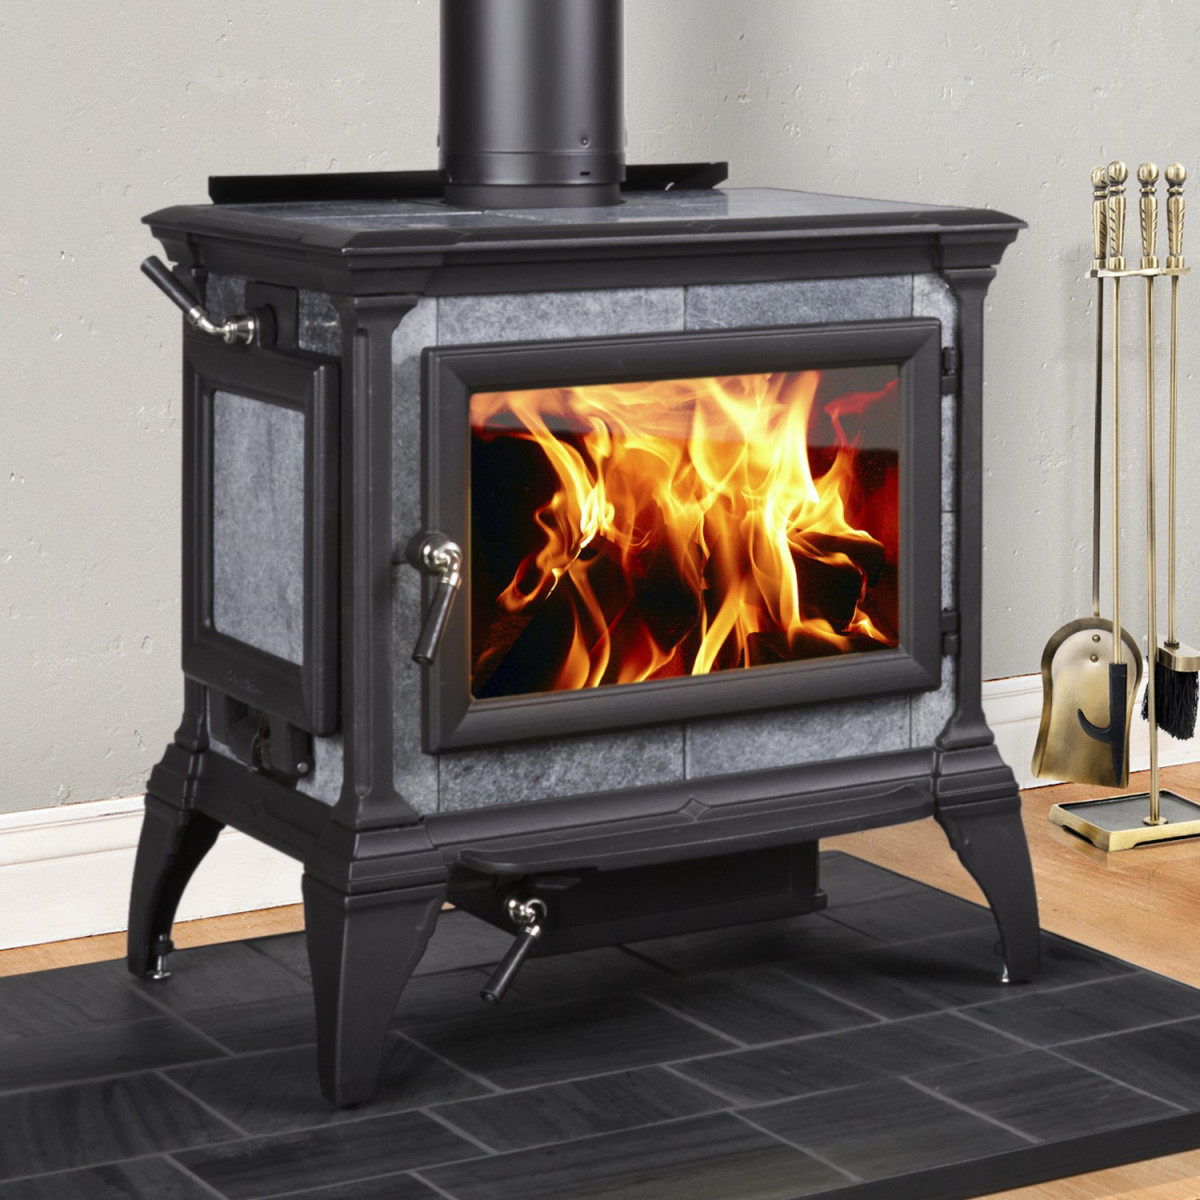 hearthstone wood stove heritage 8022.jpg - Wood Burning Stove Santa Rosa, Wood Stove Sonoma County